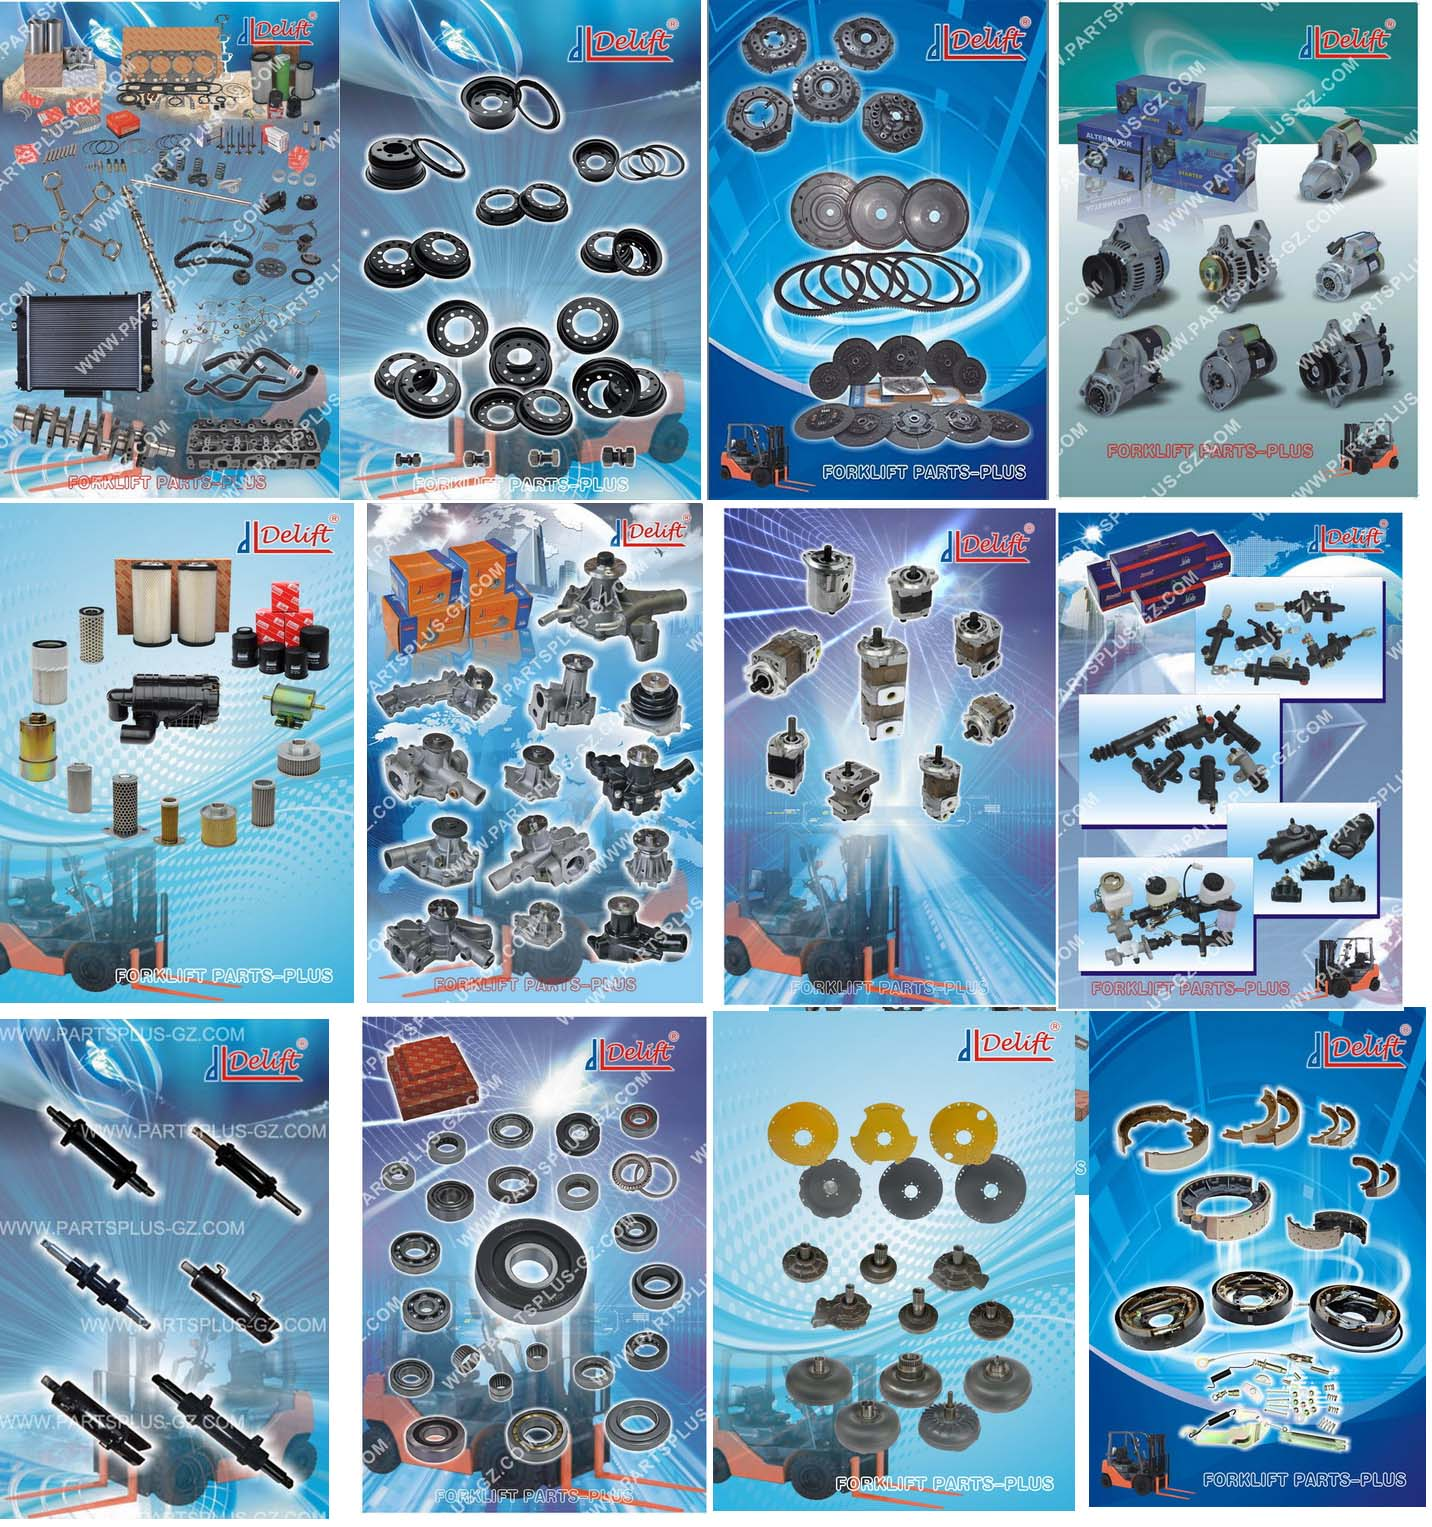 ALL KINDS OF FORKLIFT PARTS STOCK TO SELL